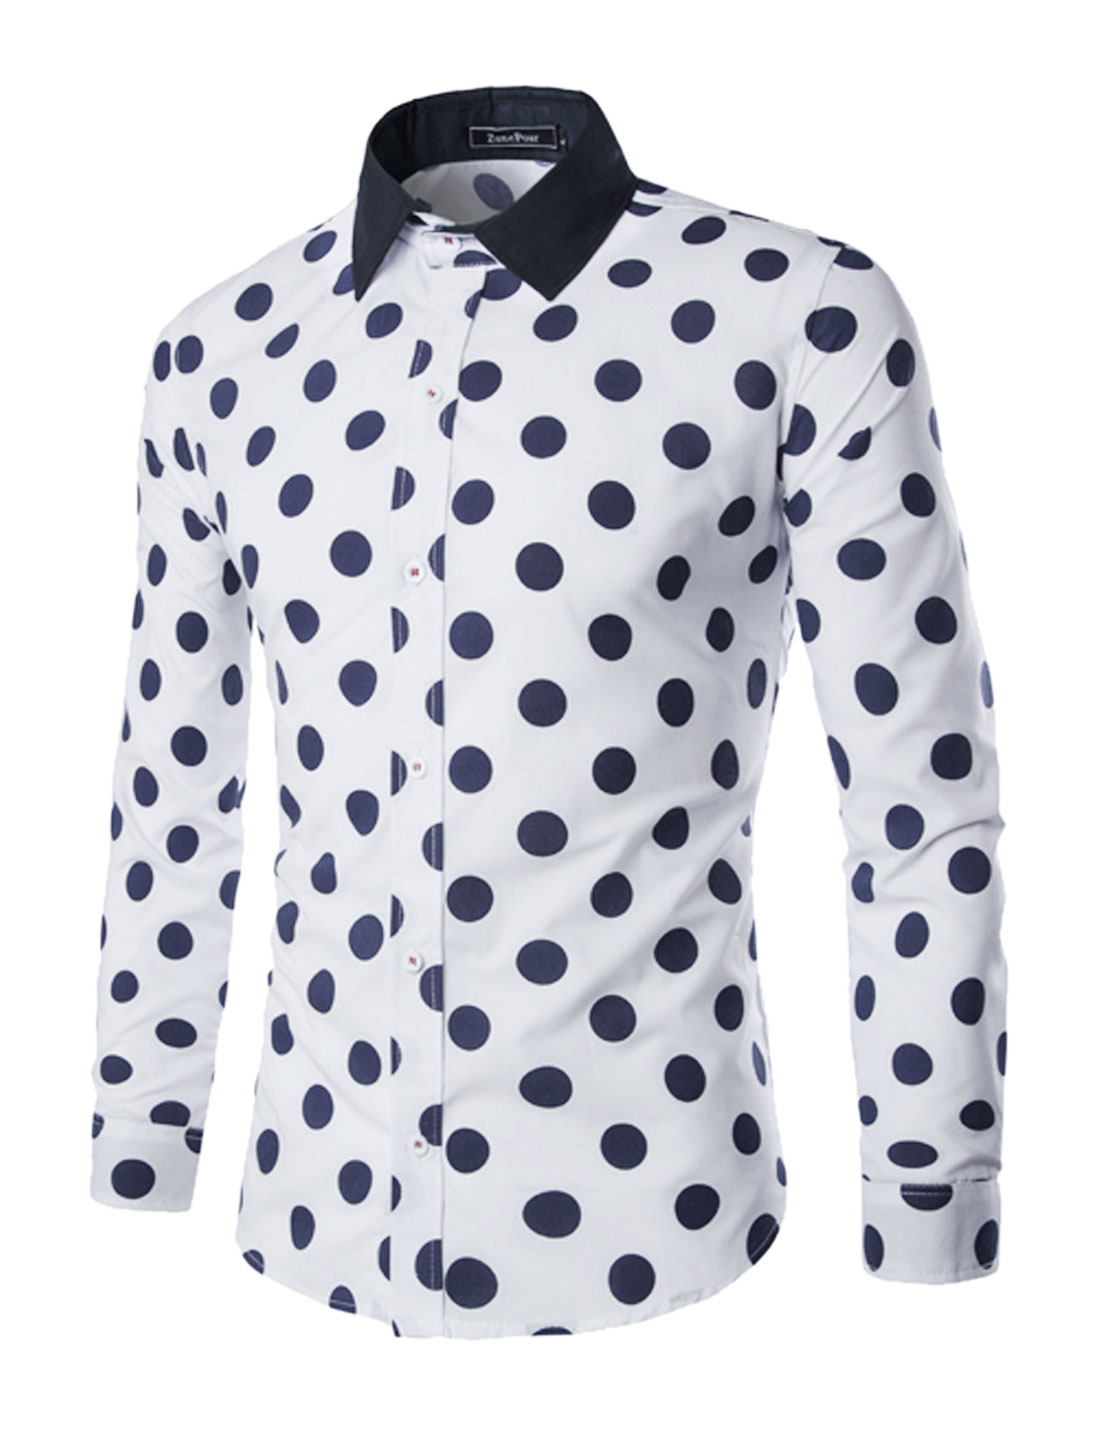 Men Collared Single Breasted Dots Slim Fit Shirt White M